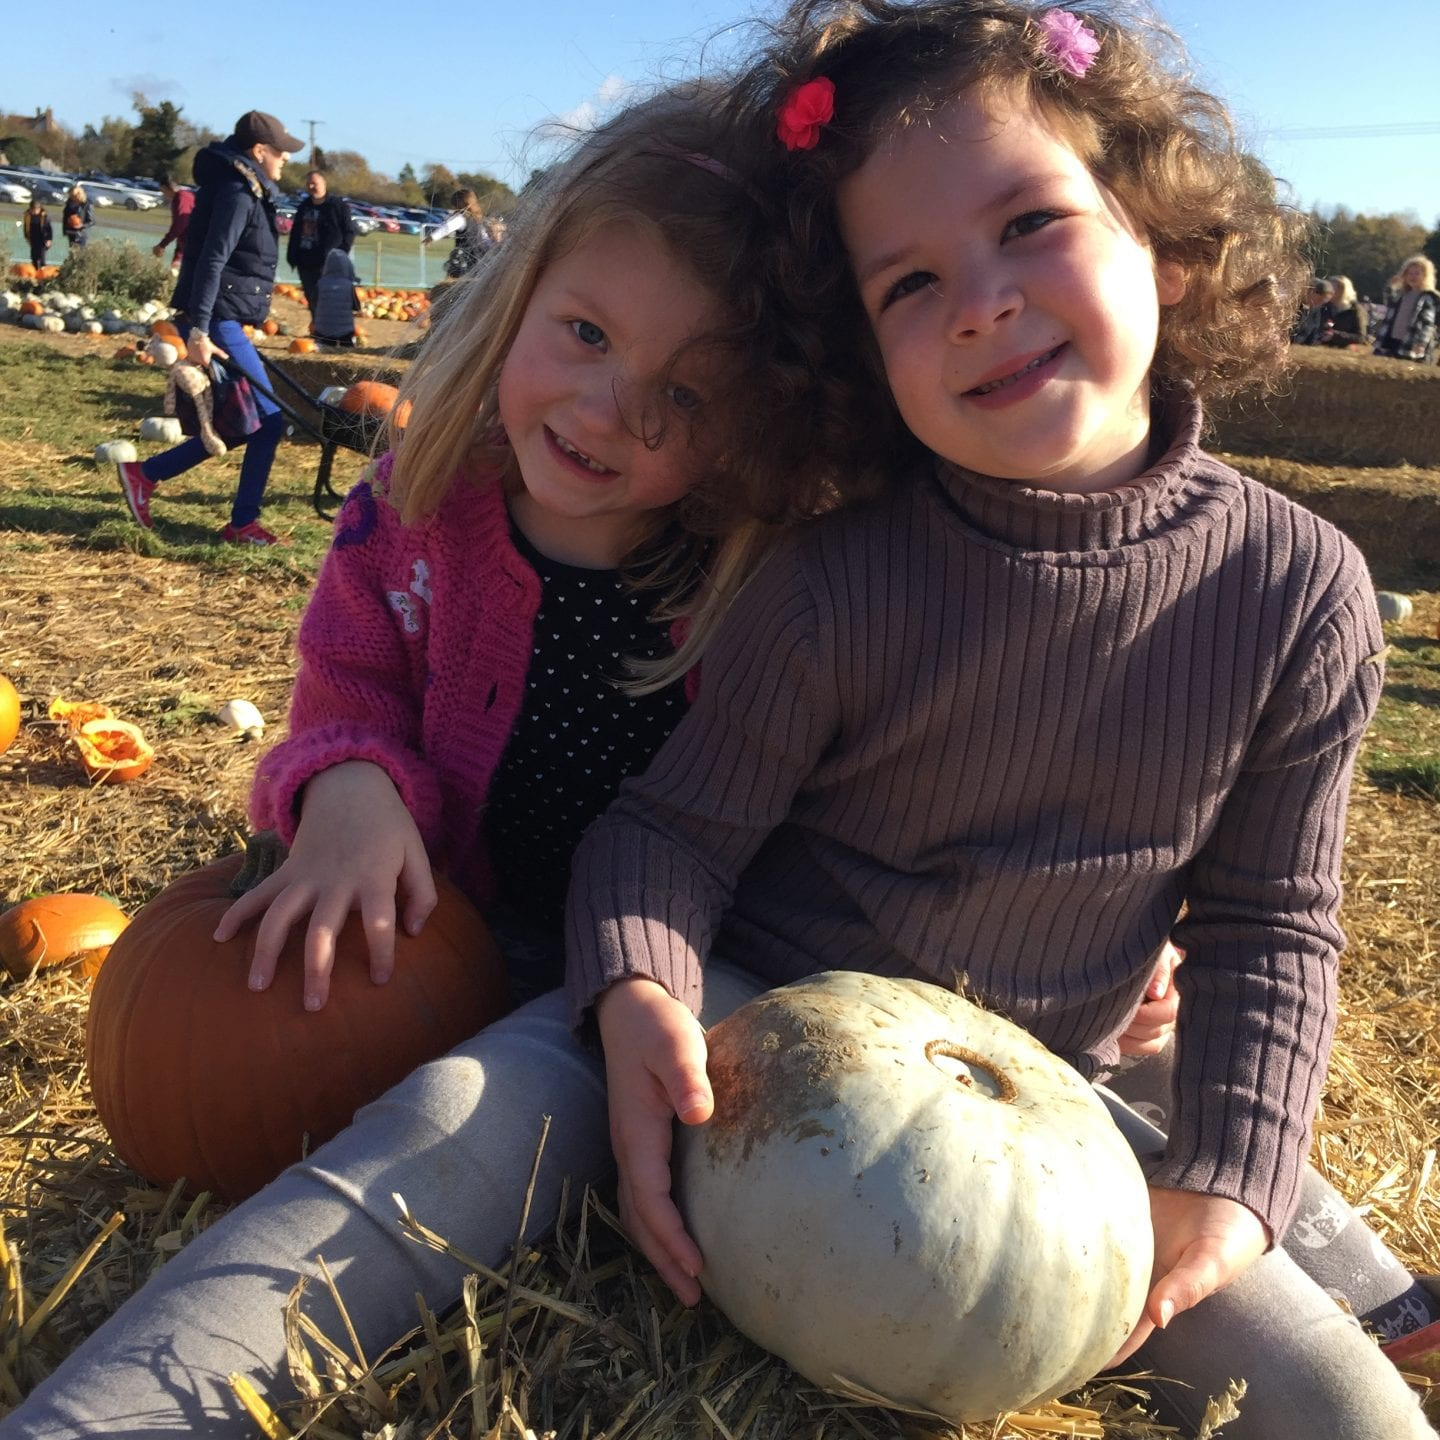 2 young girls sitting on a straw bale with their pumpkins